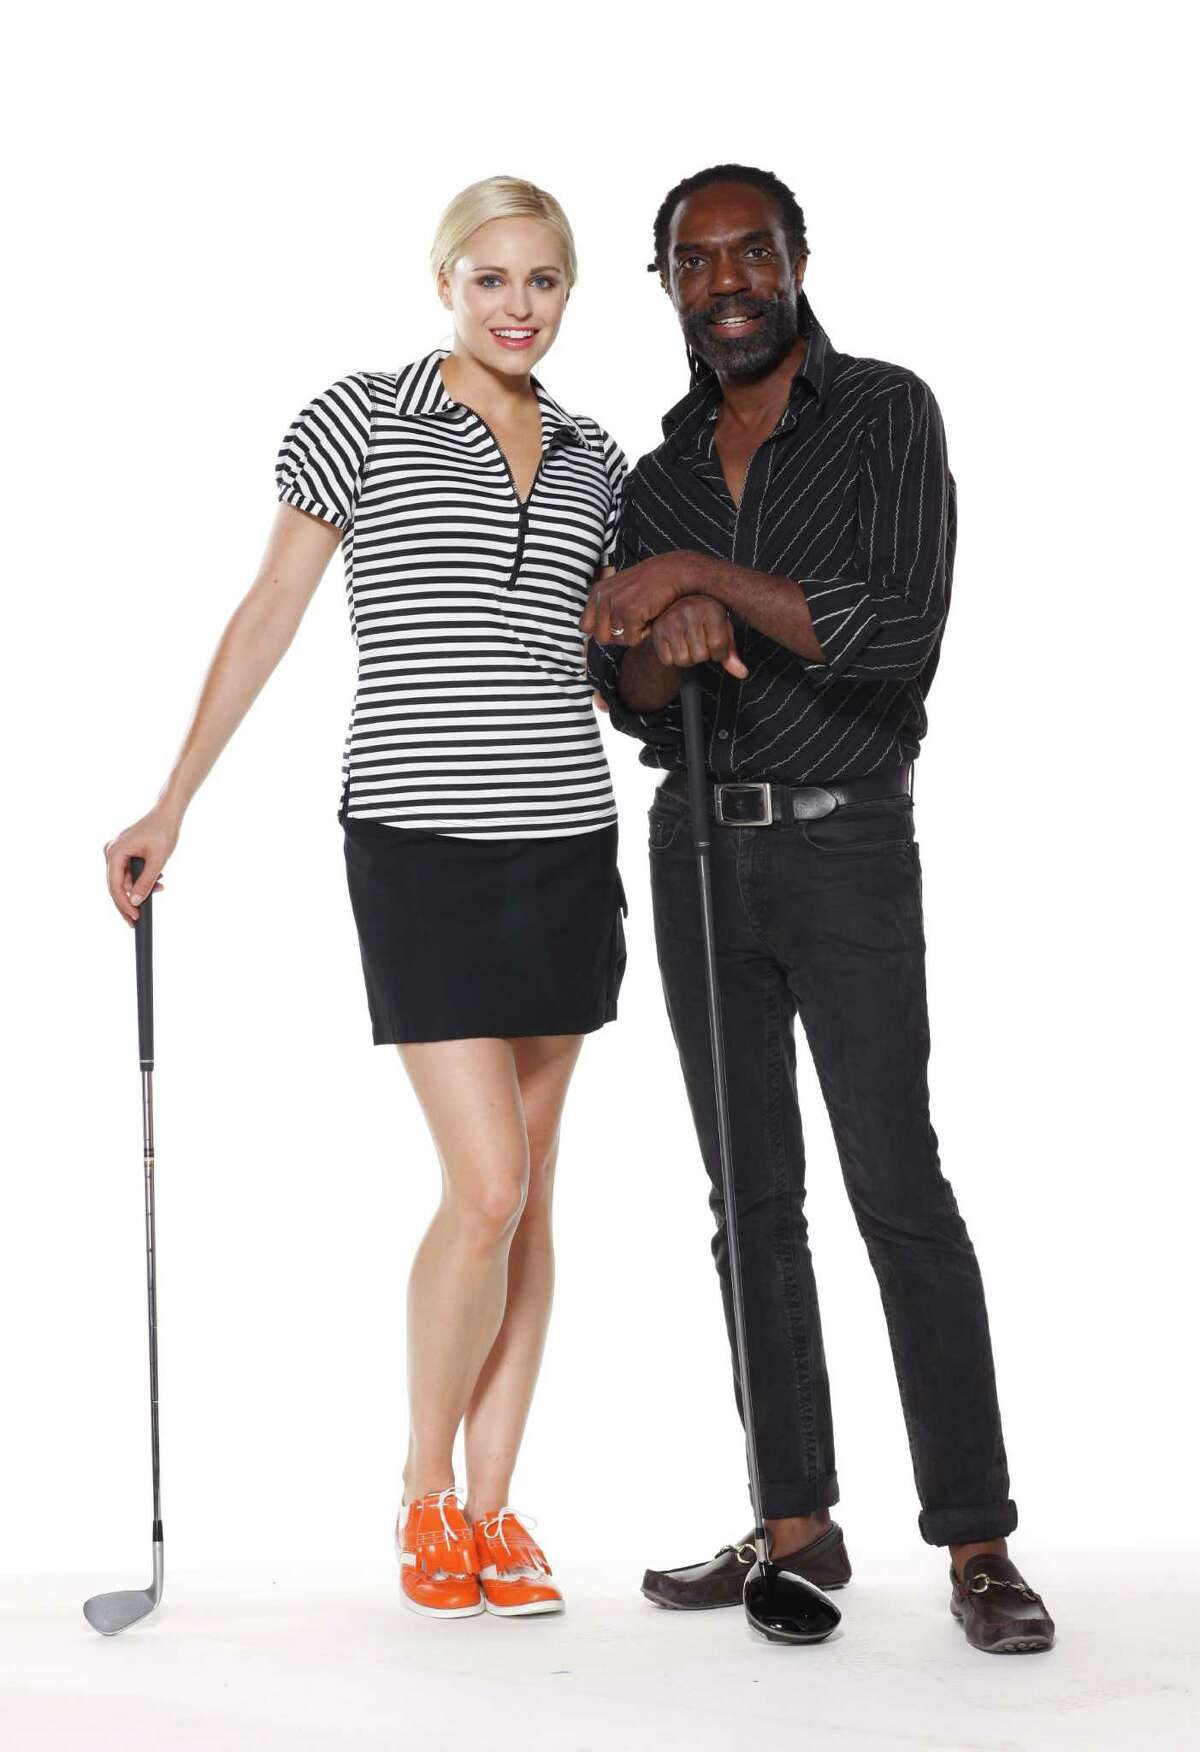 Los Angeles-based fashion designer Kevan Hall, right, poses with a model showing off some of the looks of his Keven Hall Sport line which began in 2014 with an active lifestyle brand of golf wear for women.